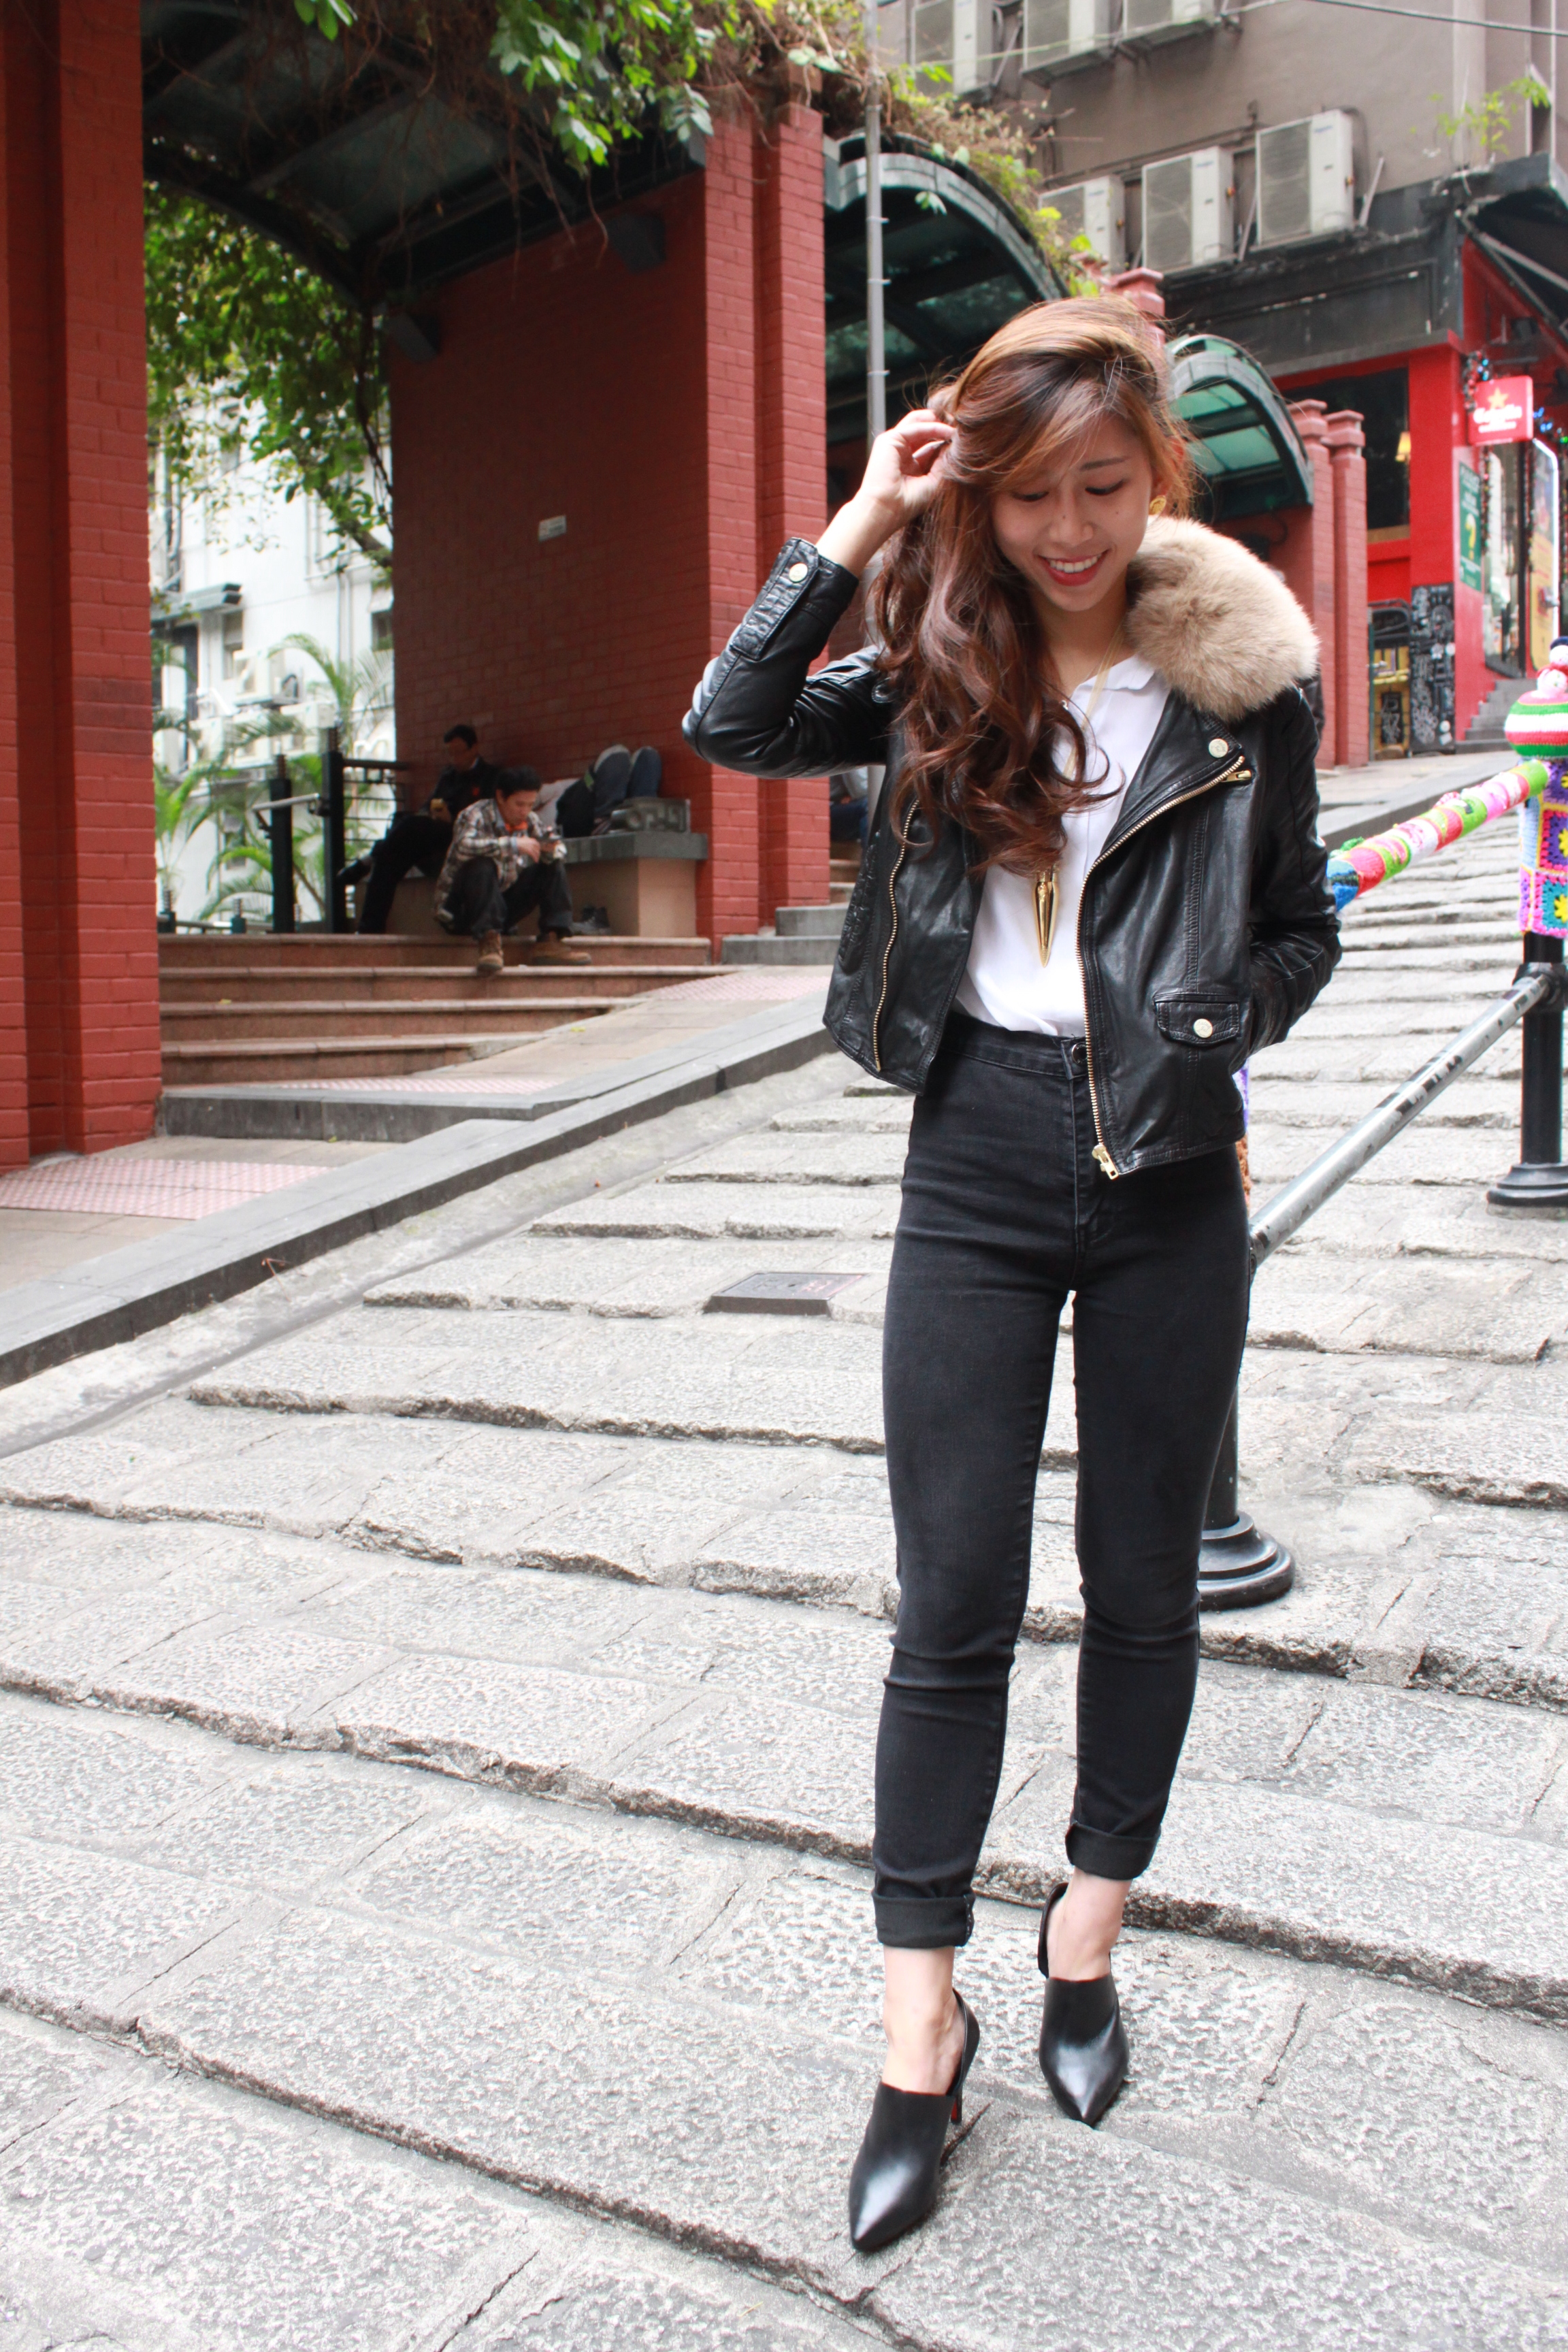 Christian Louboutin Let Me Tell You Silky Satin   H&M white sheer shirt  / Boohoo super-high waisted black skinny jeans / Staccato cut-out heels / Salad leather biker jacket ( alternative )/ Alexander Wang leather clutch